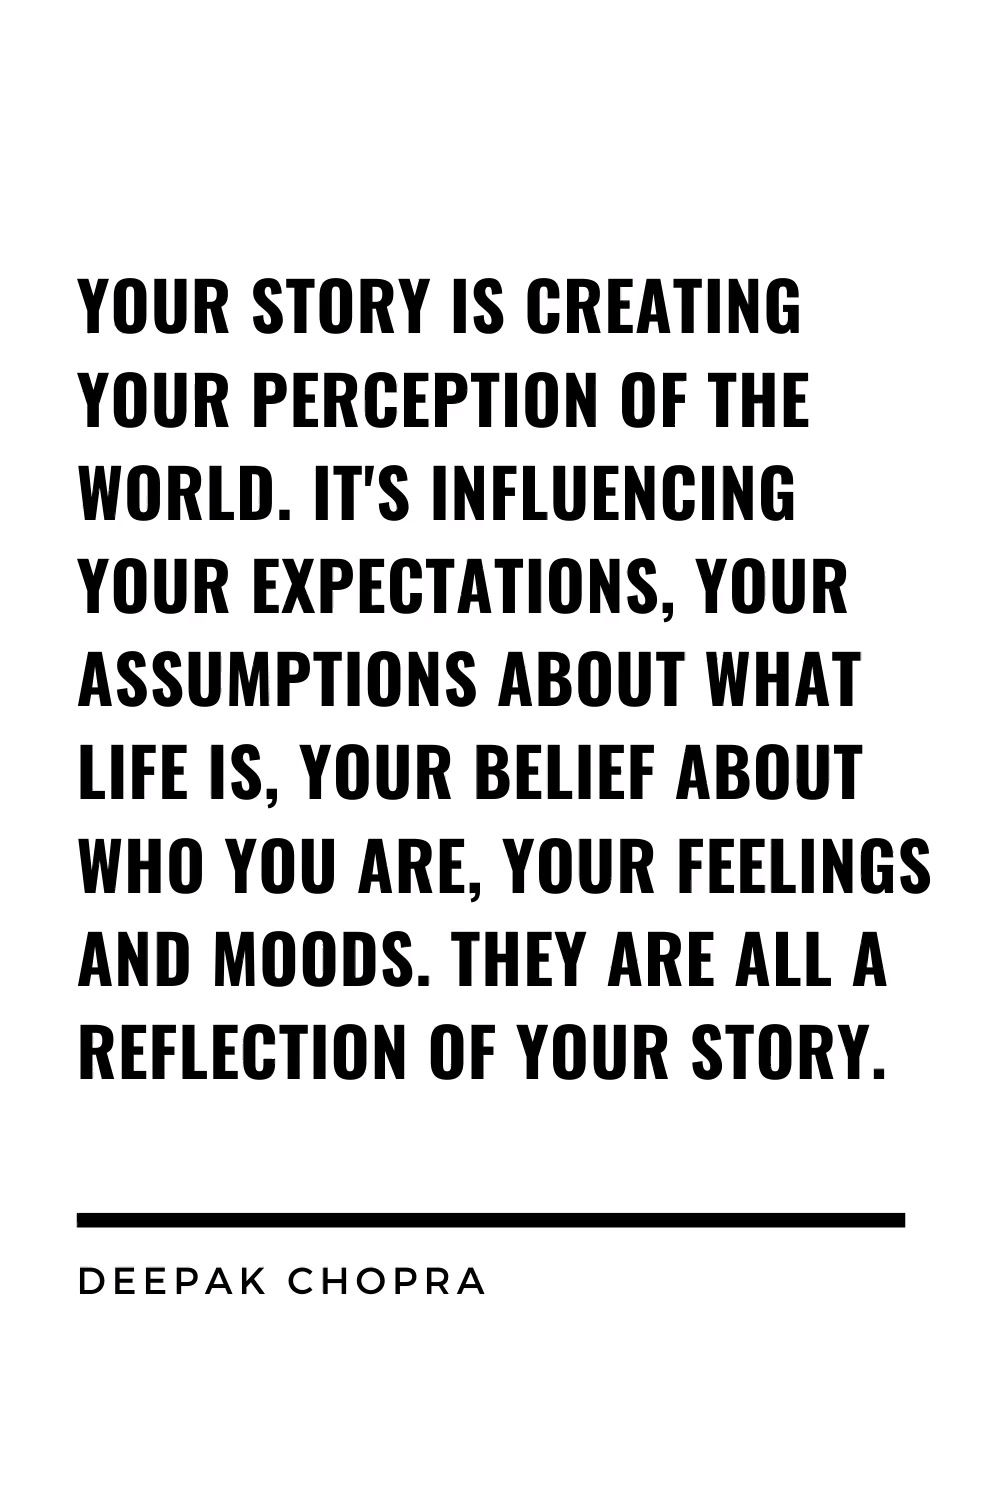 Inspirational Quote: Your Story is Creating Your Perception of the World